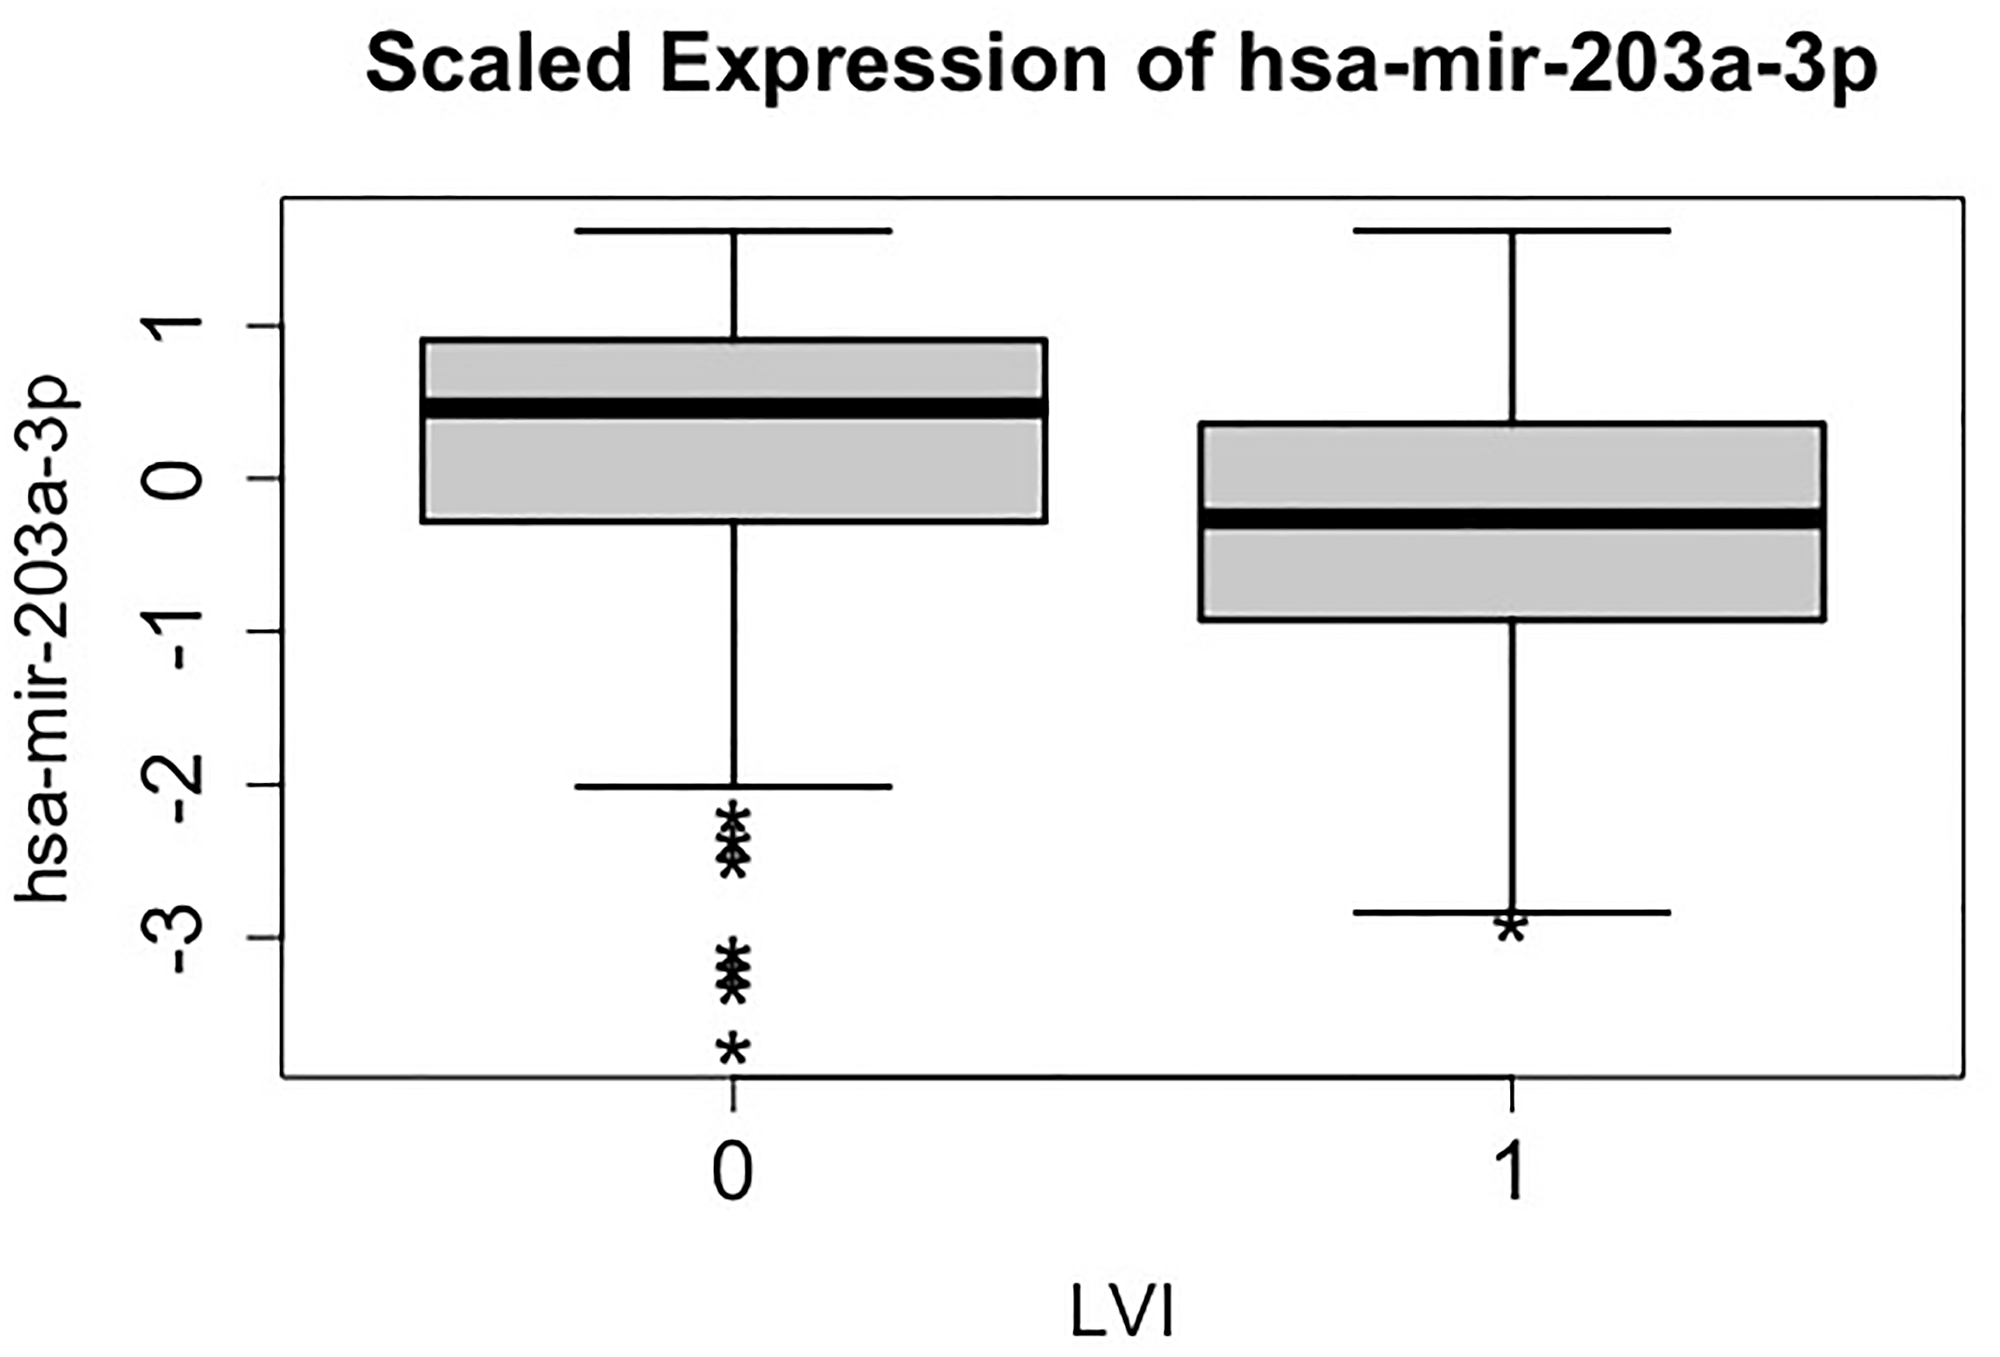 Side-by-side boxplots (distribution) of the scaled expression of hsa-mir-203a-3p against lymphovascular invasion (LVI) status.